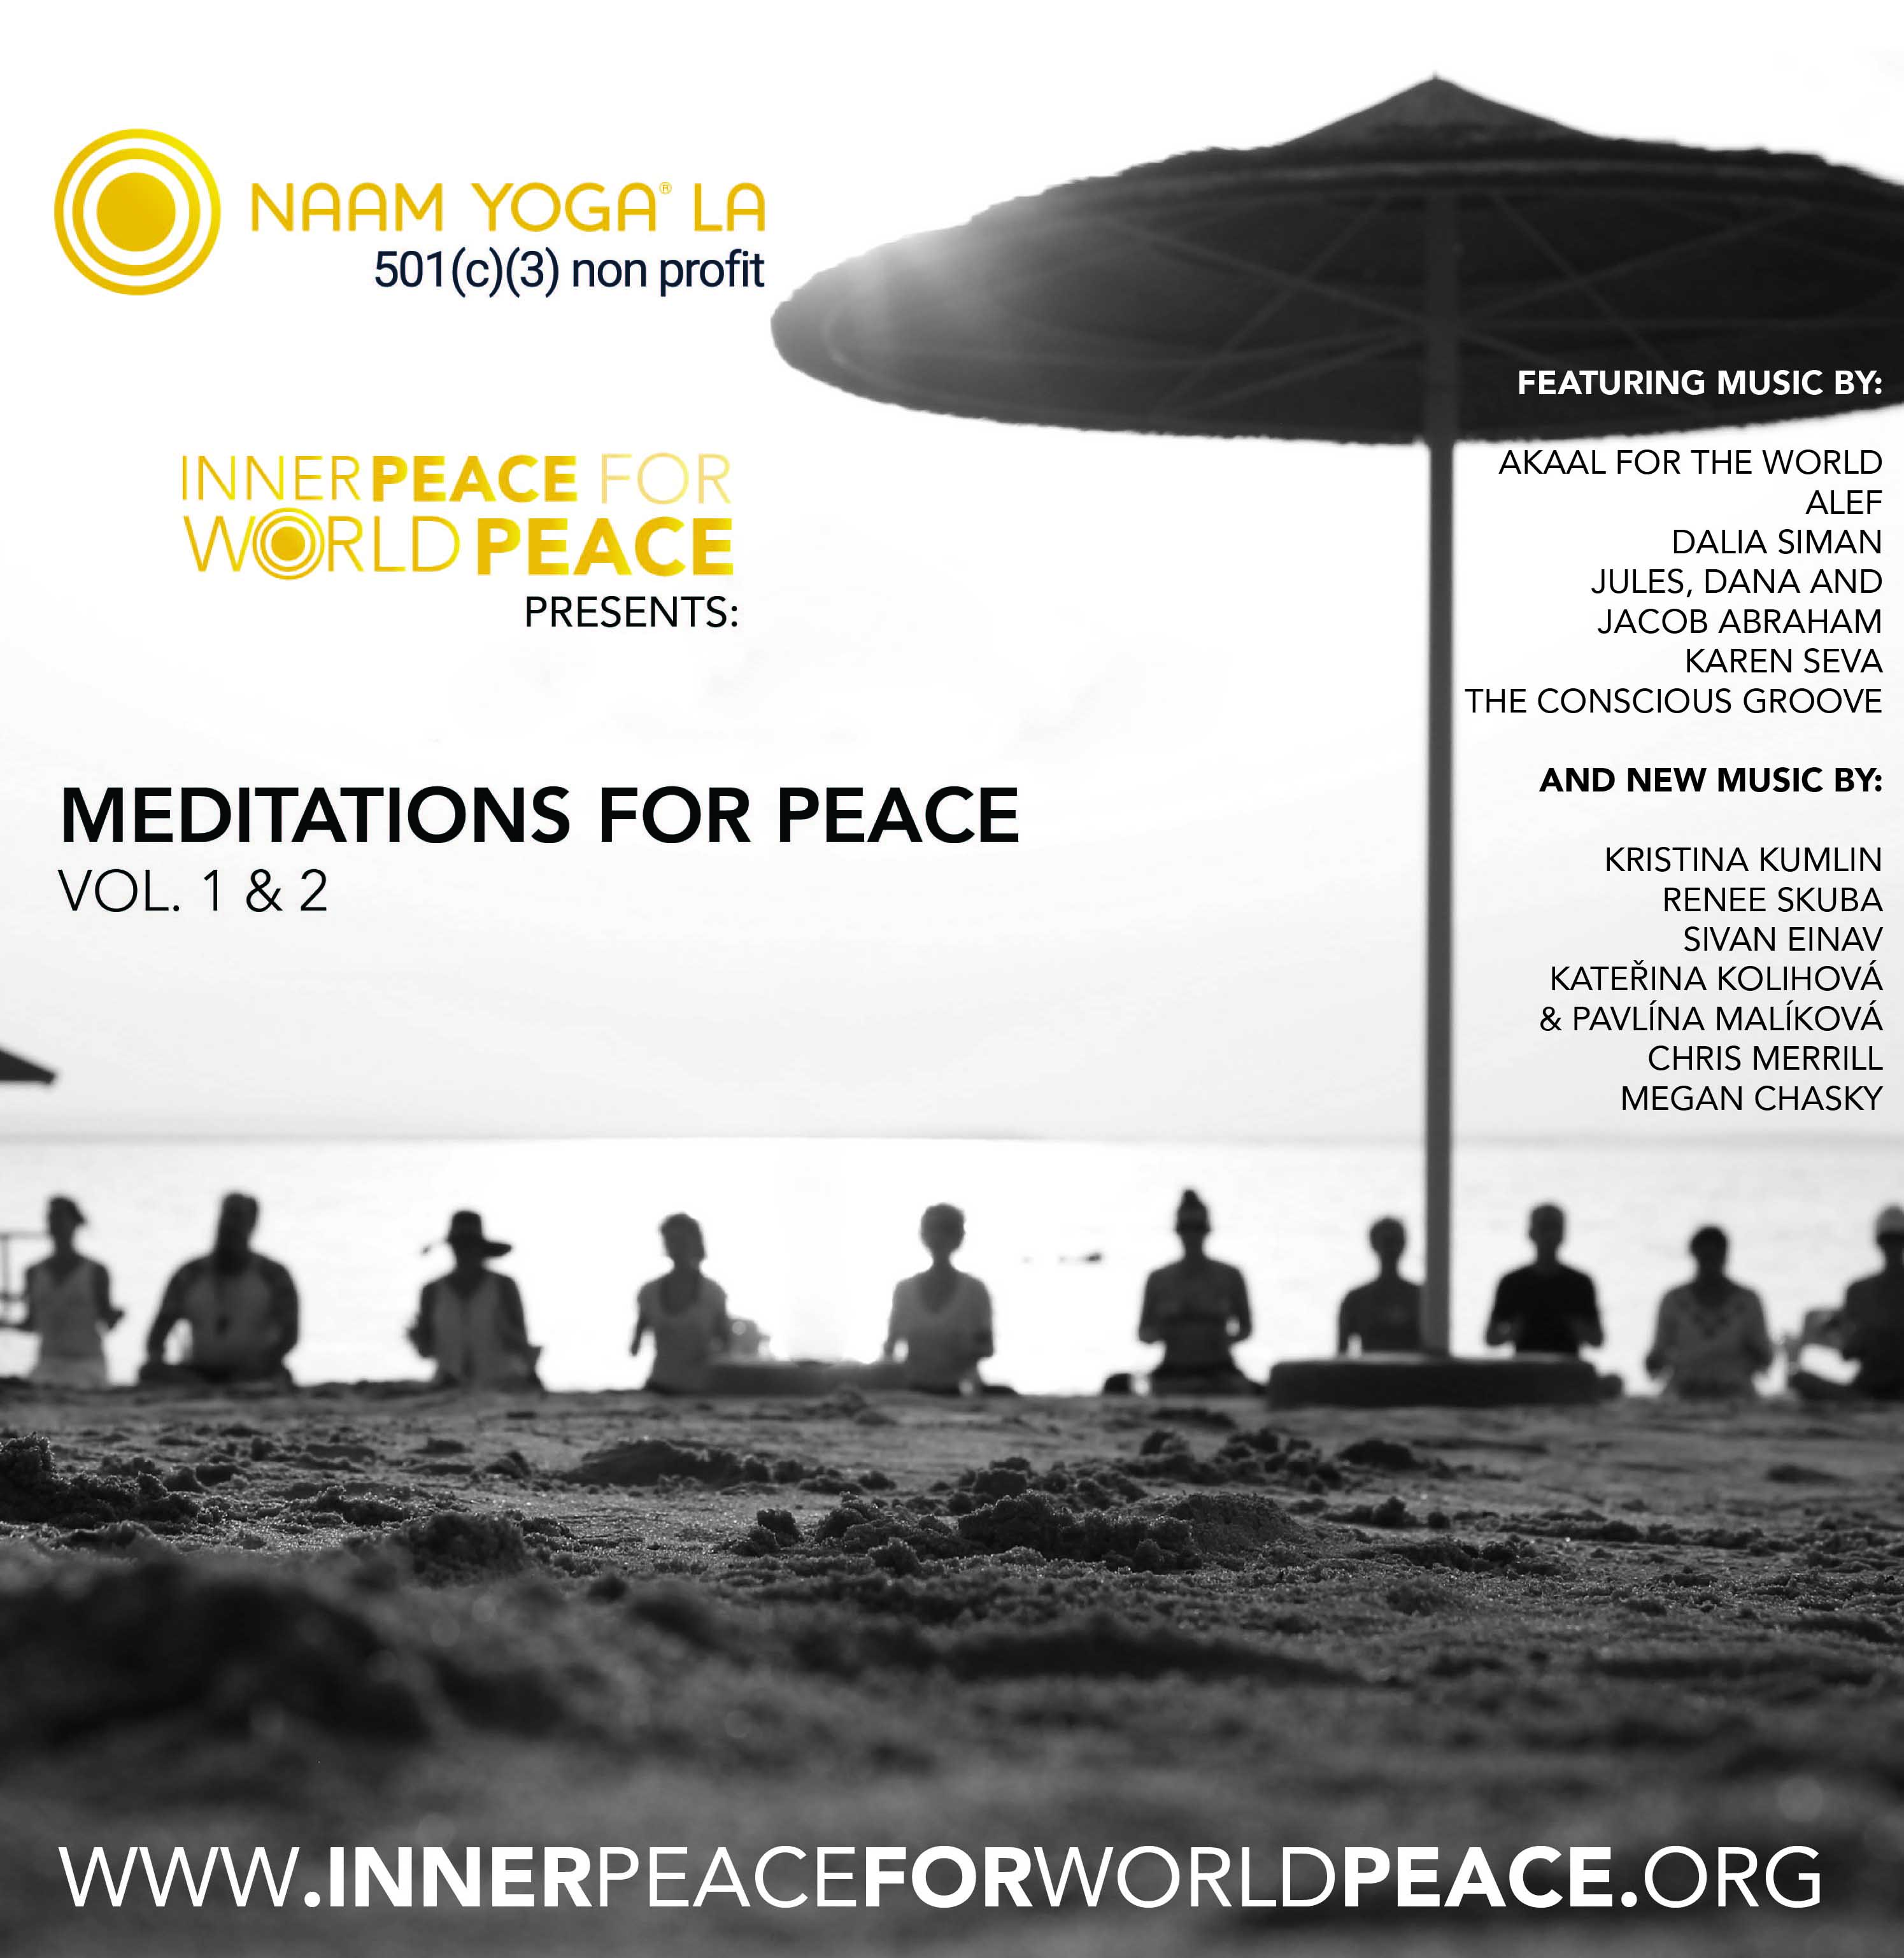 Inner Peace for World Peace Photo